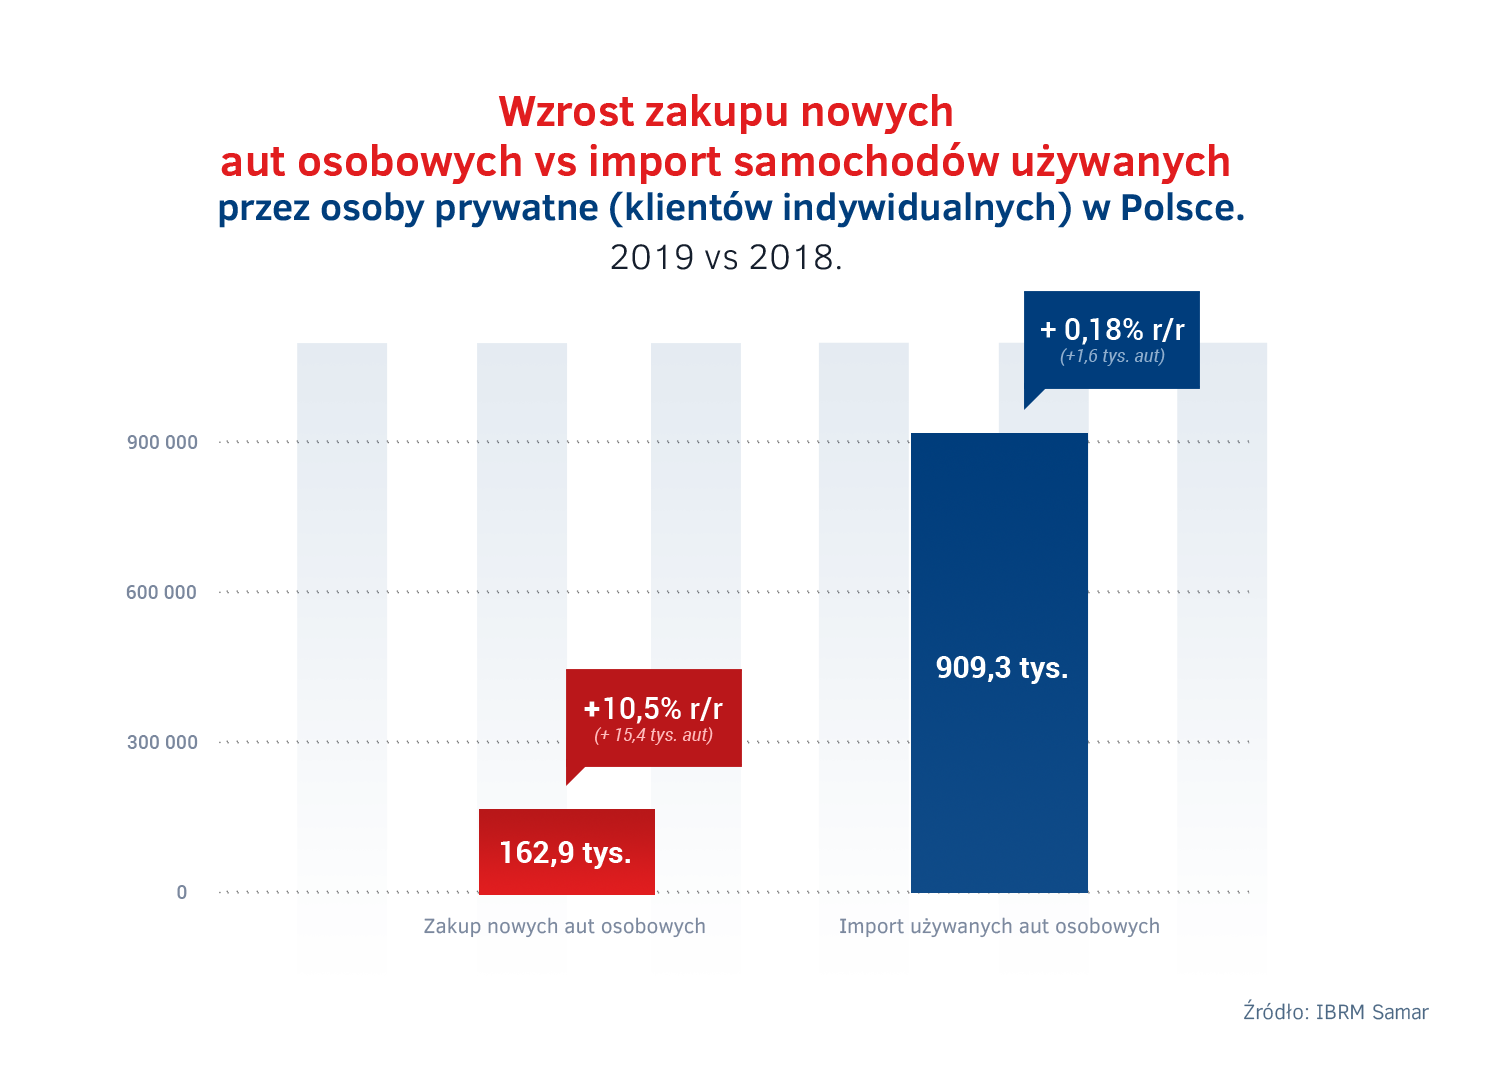 Import vs zakup nowych aut - osoby prywatne 2019.png